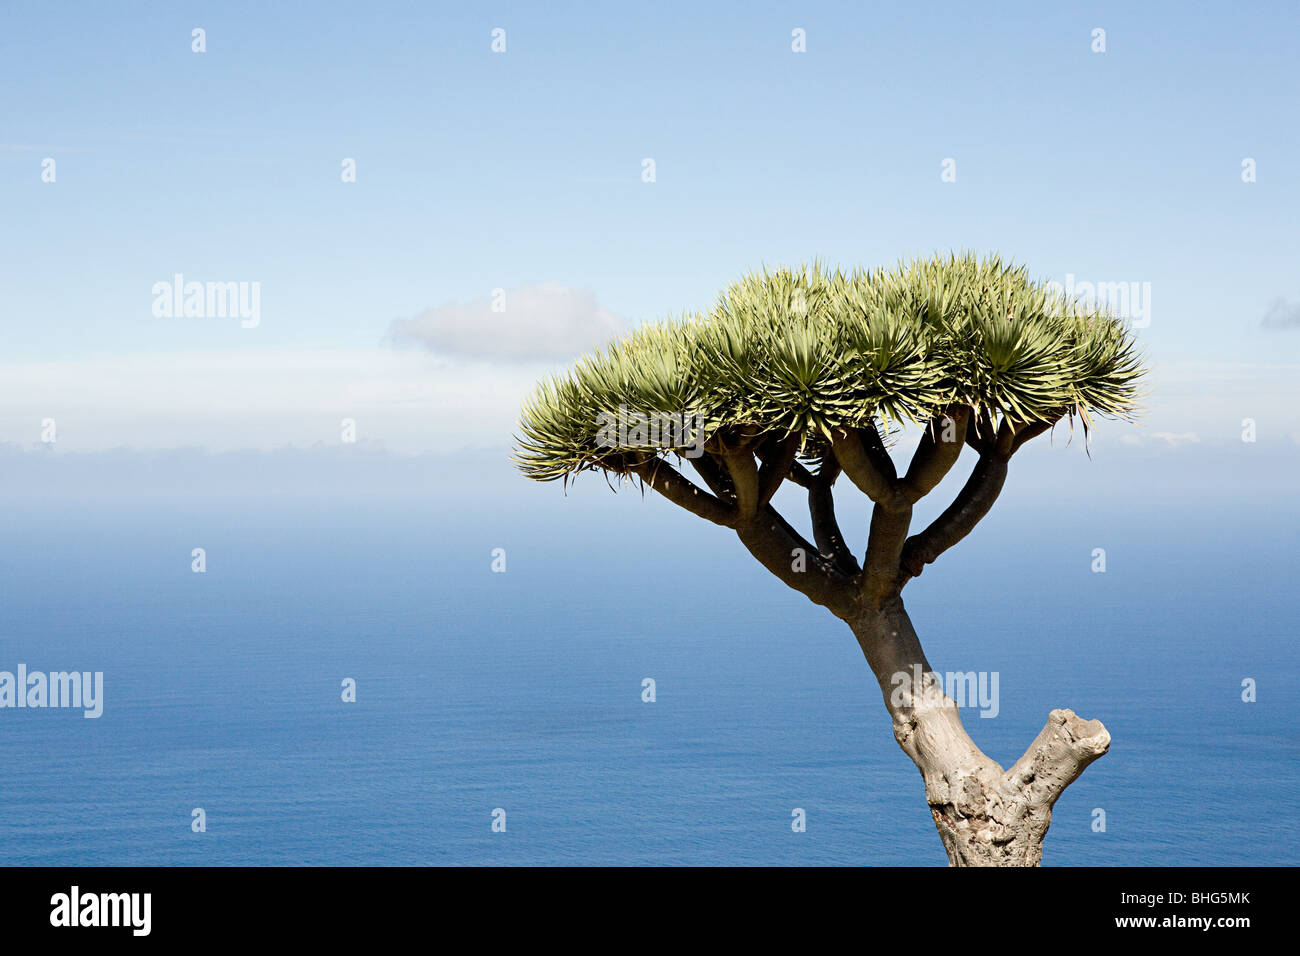 A single tree with blue sky and sea behind - Stock Image